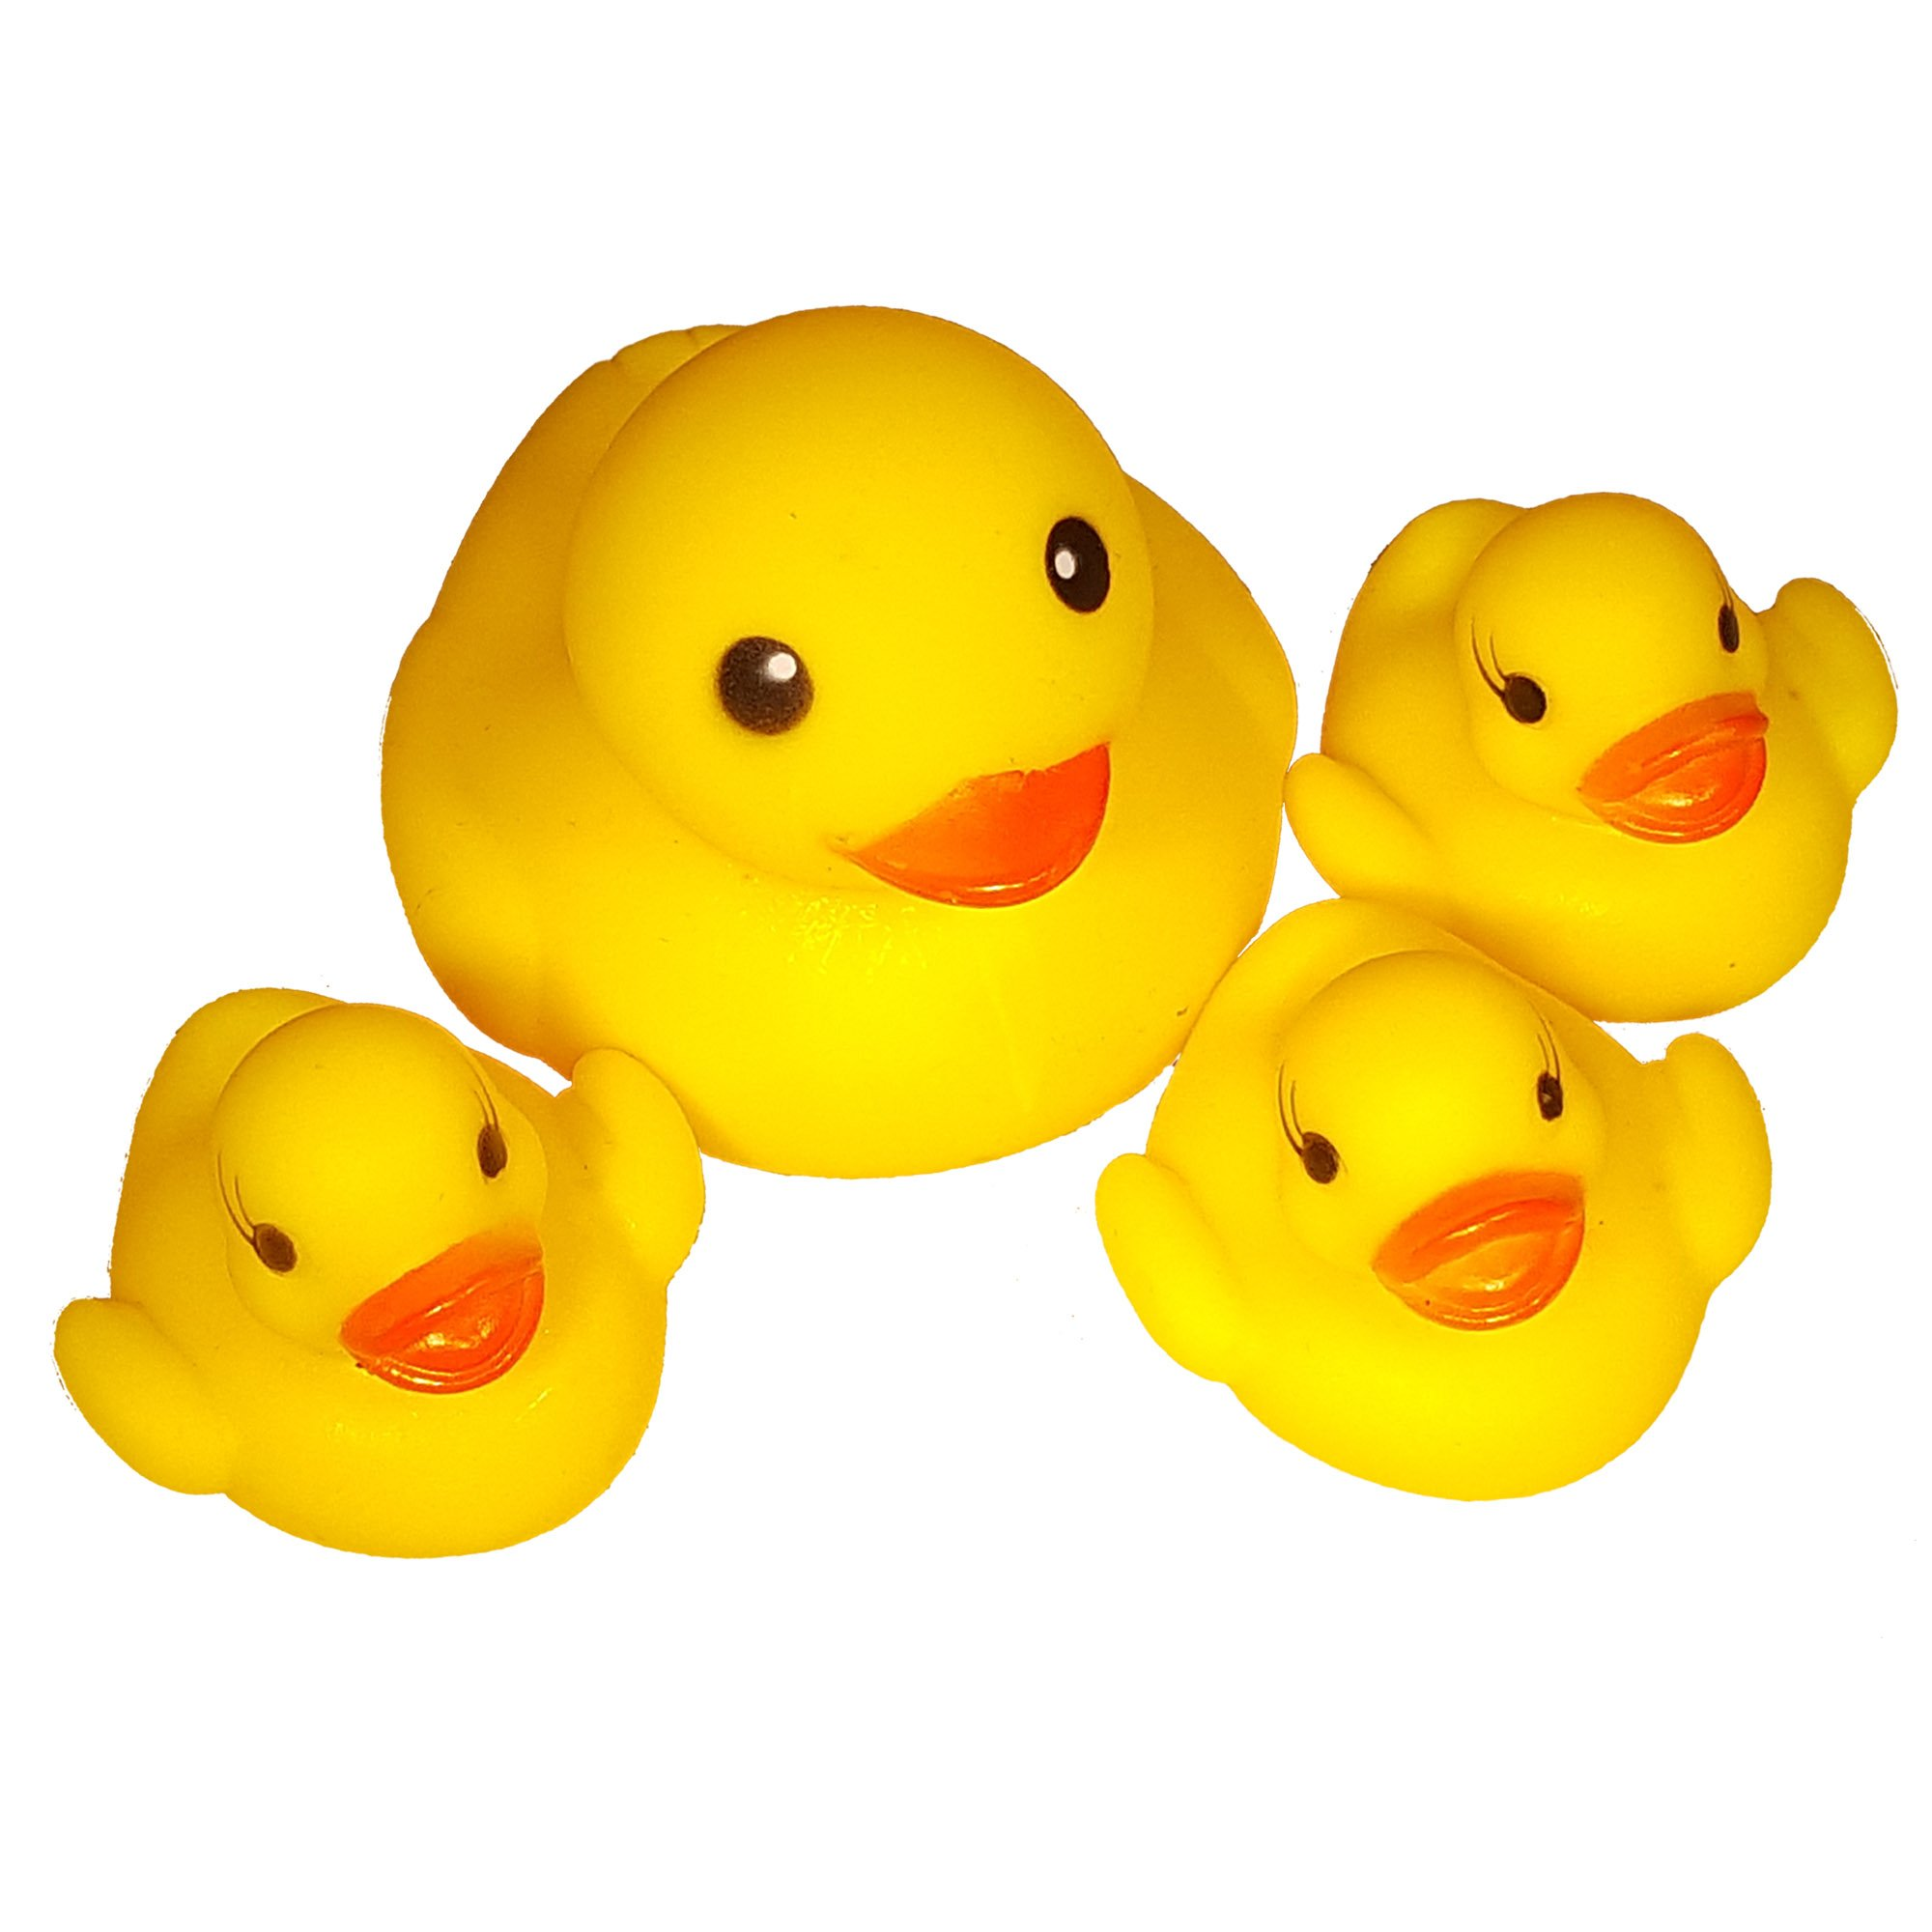 4pc Rubber Ducks - Large Rubber Duck with 3 Mini Rubber Duck Toys - Family of Ducks - Rubber Ducky Assortment